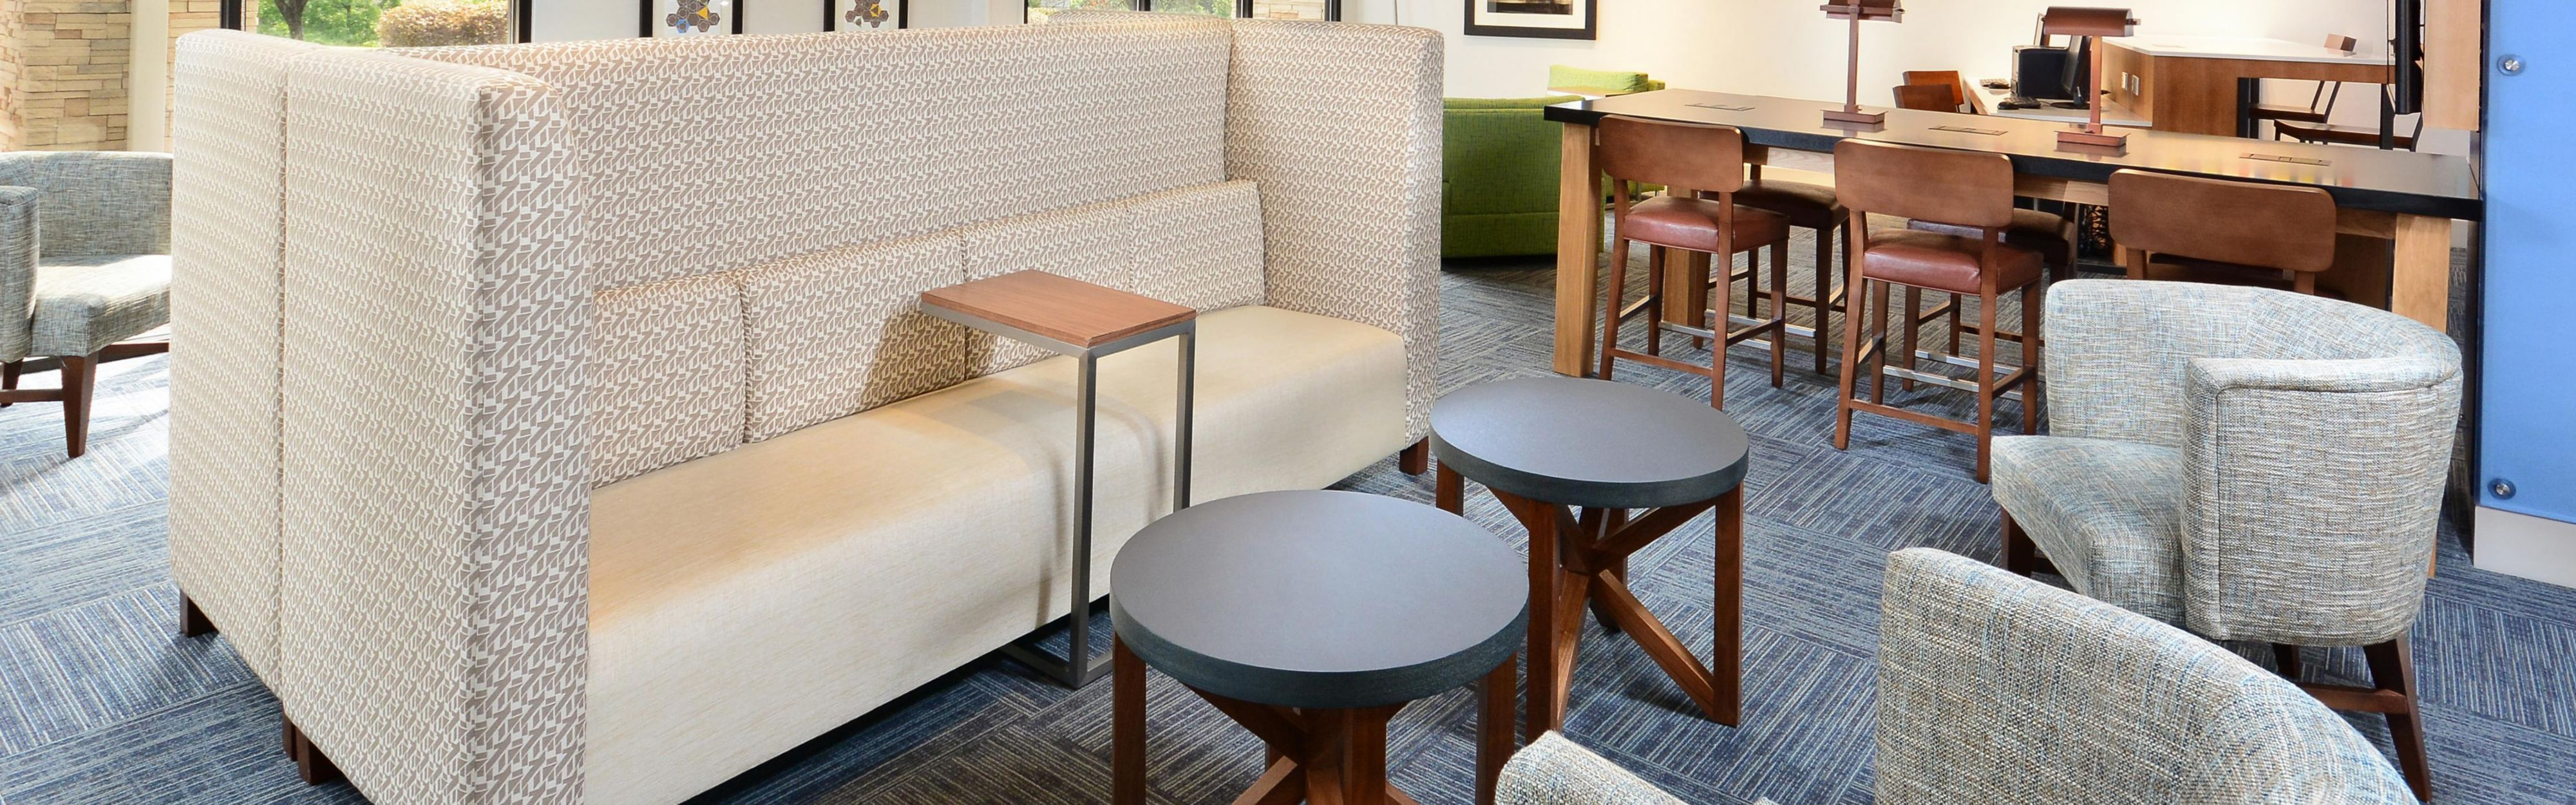 Holiday Inn Express & Suites Raleigh Durham Airport at RTP image 0